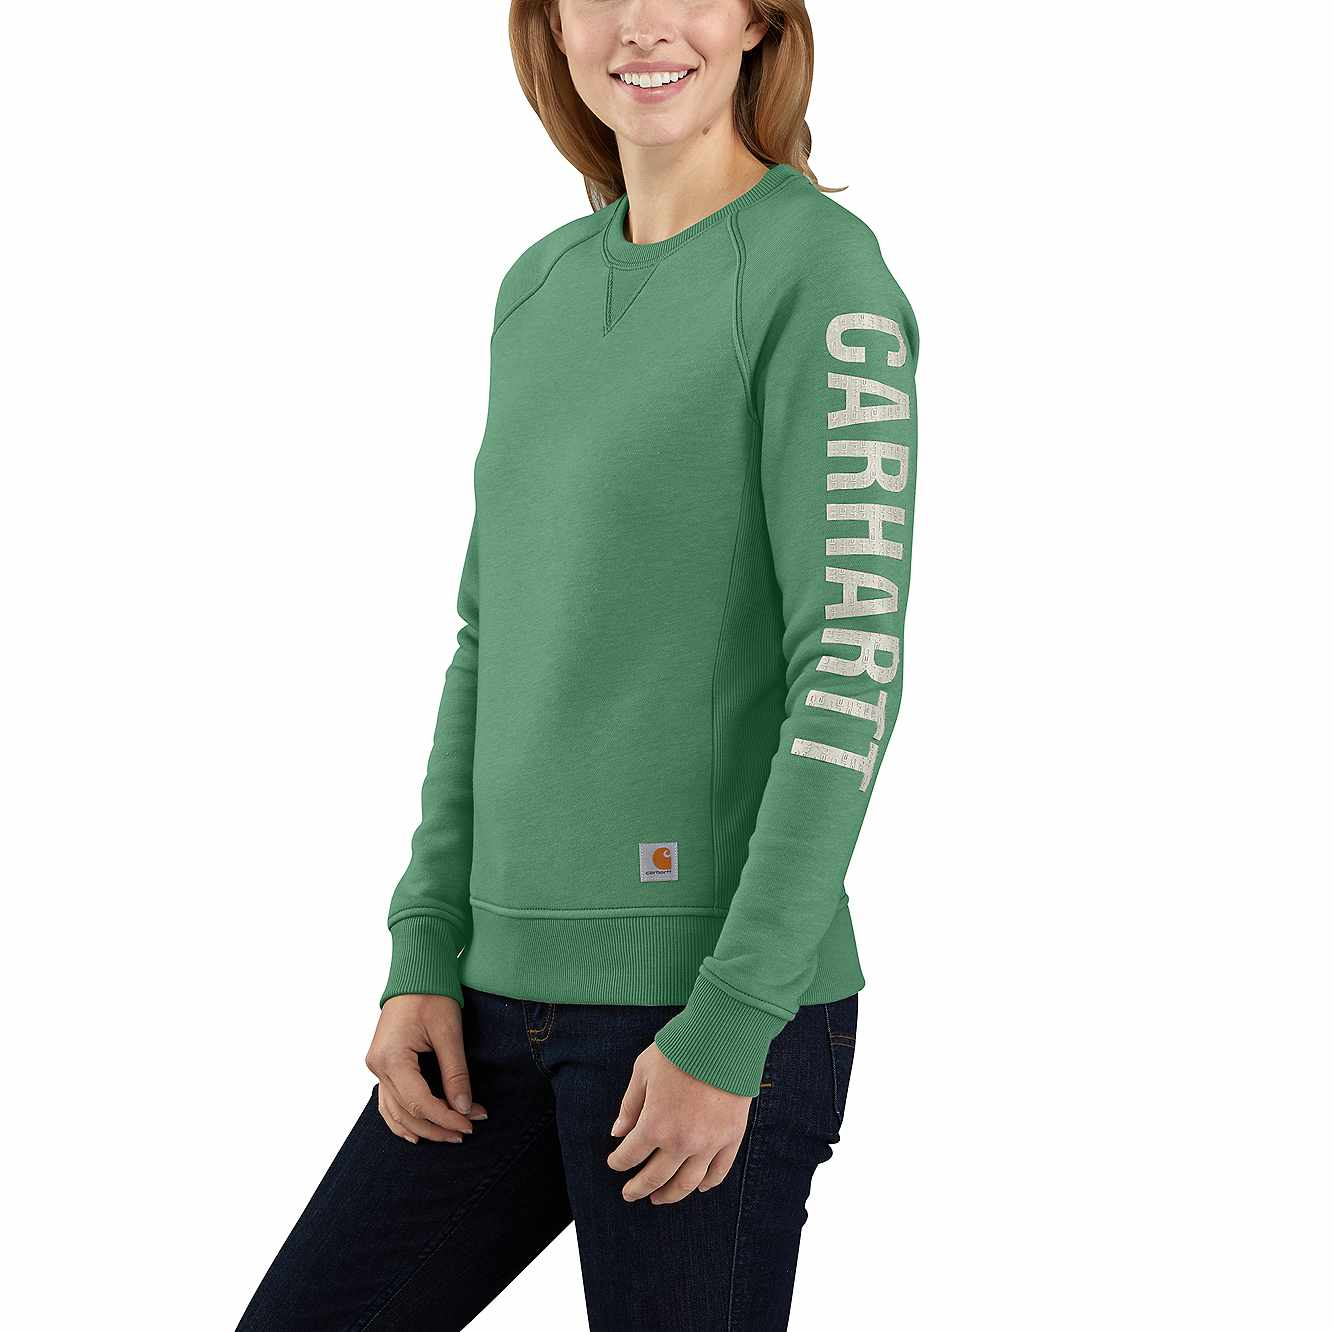 Picture of RELAXED FIT MIDWEIGHT CREWNECK BLOCK LOGO SLEEVE GRAPHIC SWEATSHIRT